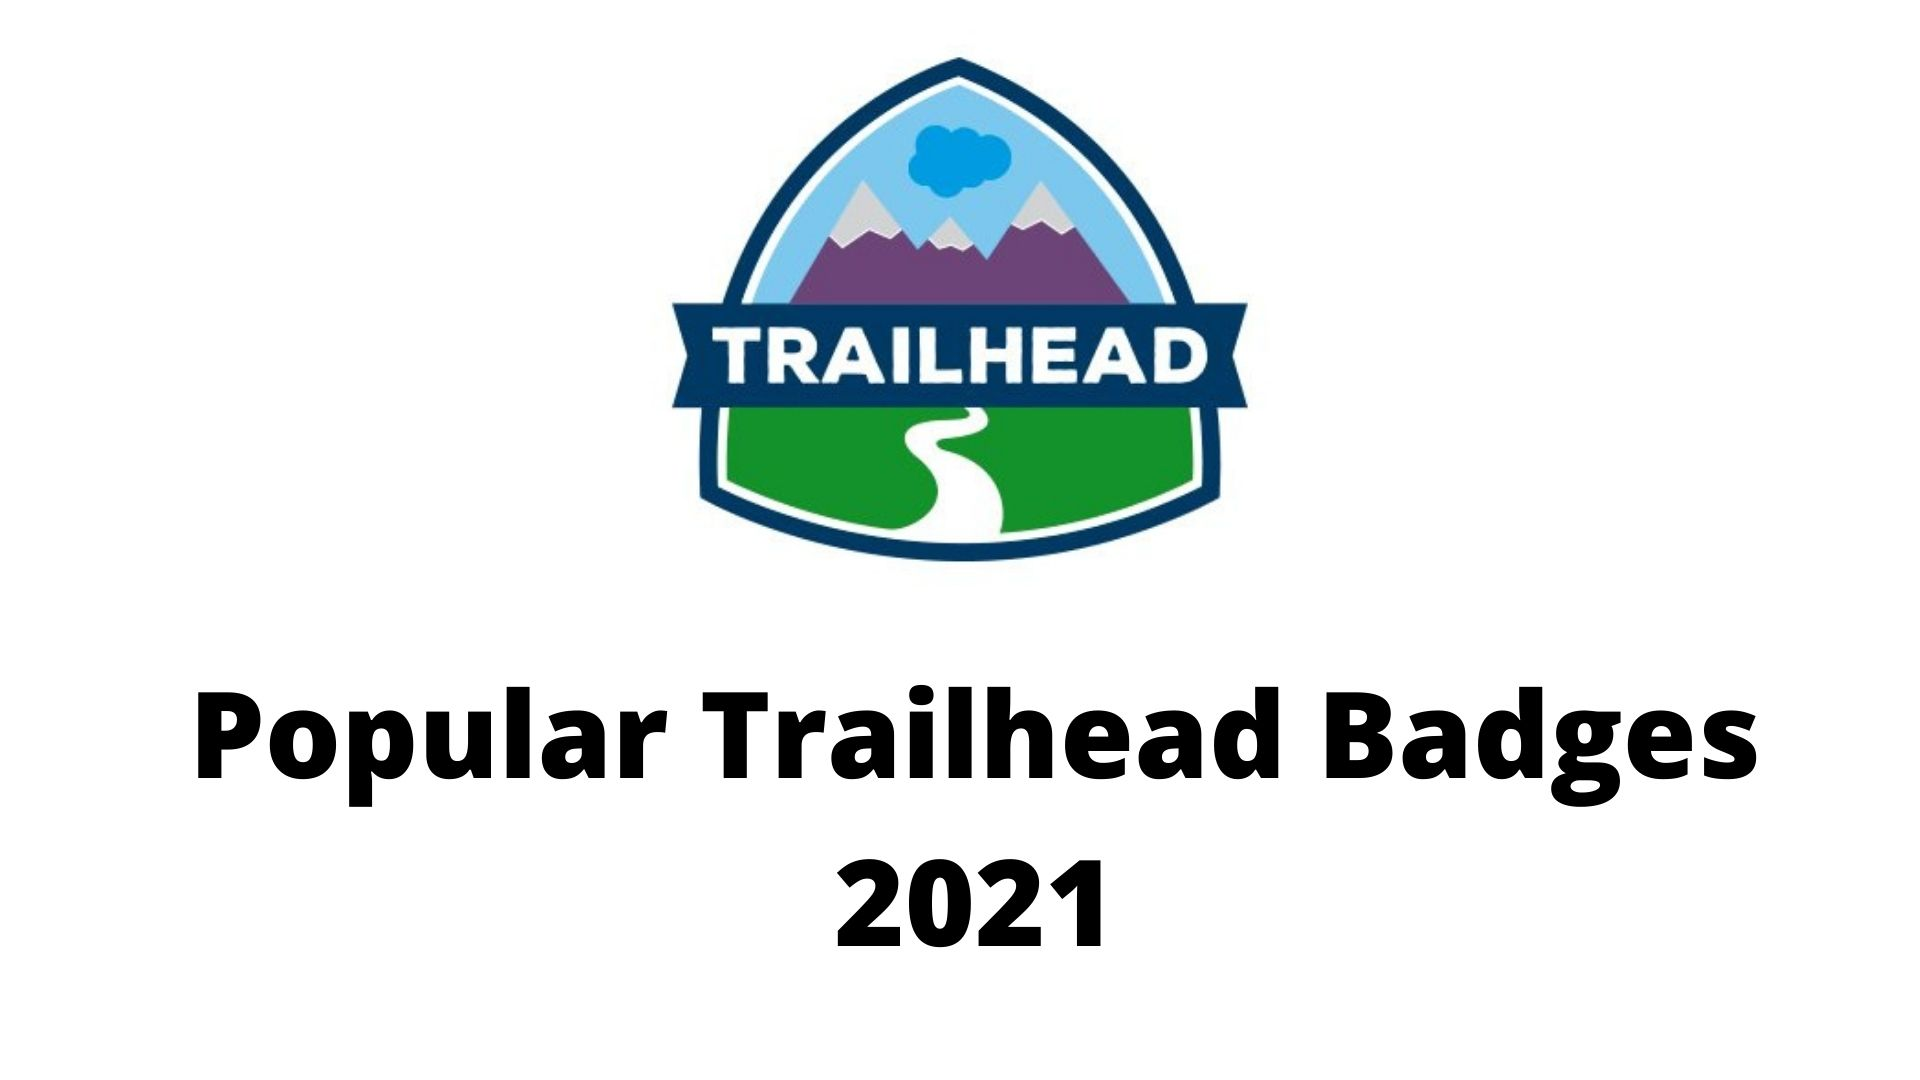 Most Popular Trailhead Badge in Salesforce 2021